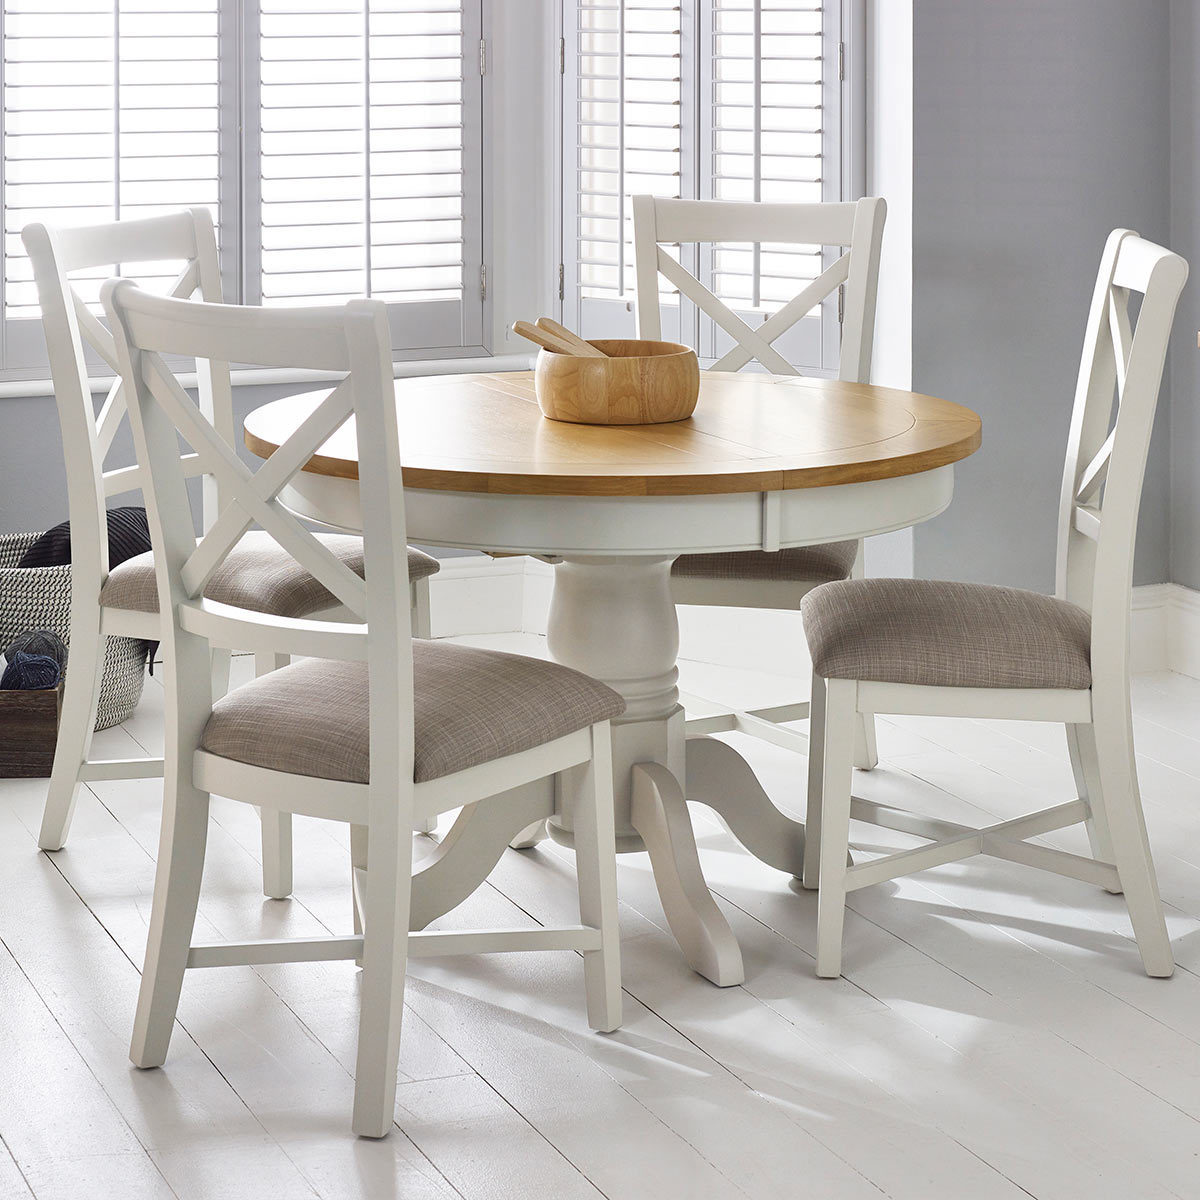 Costco Tables And Chairs Bordeaux Painted Ivory Round Extending Dining Table 4 Chairs Seats 4 6 Costco Uk